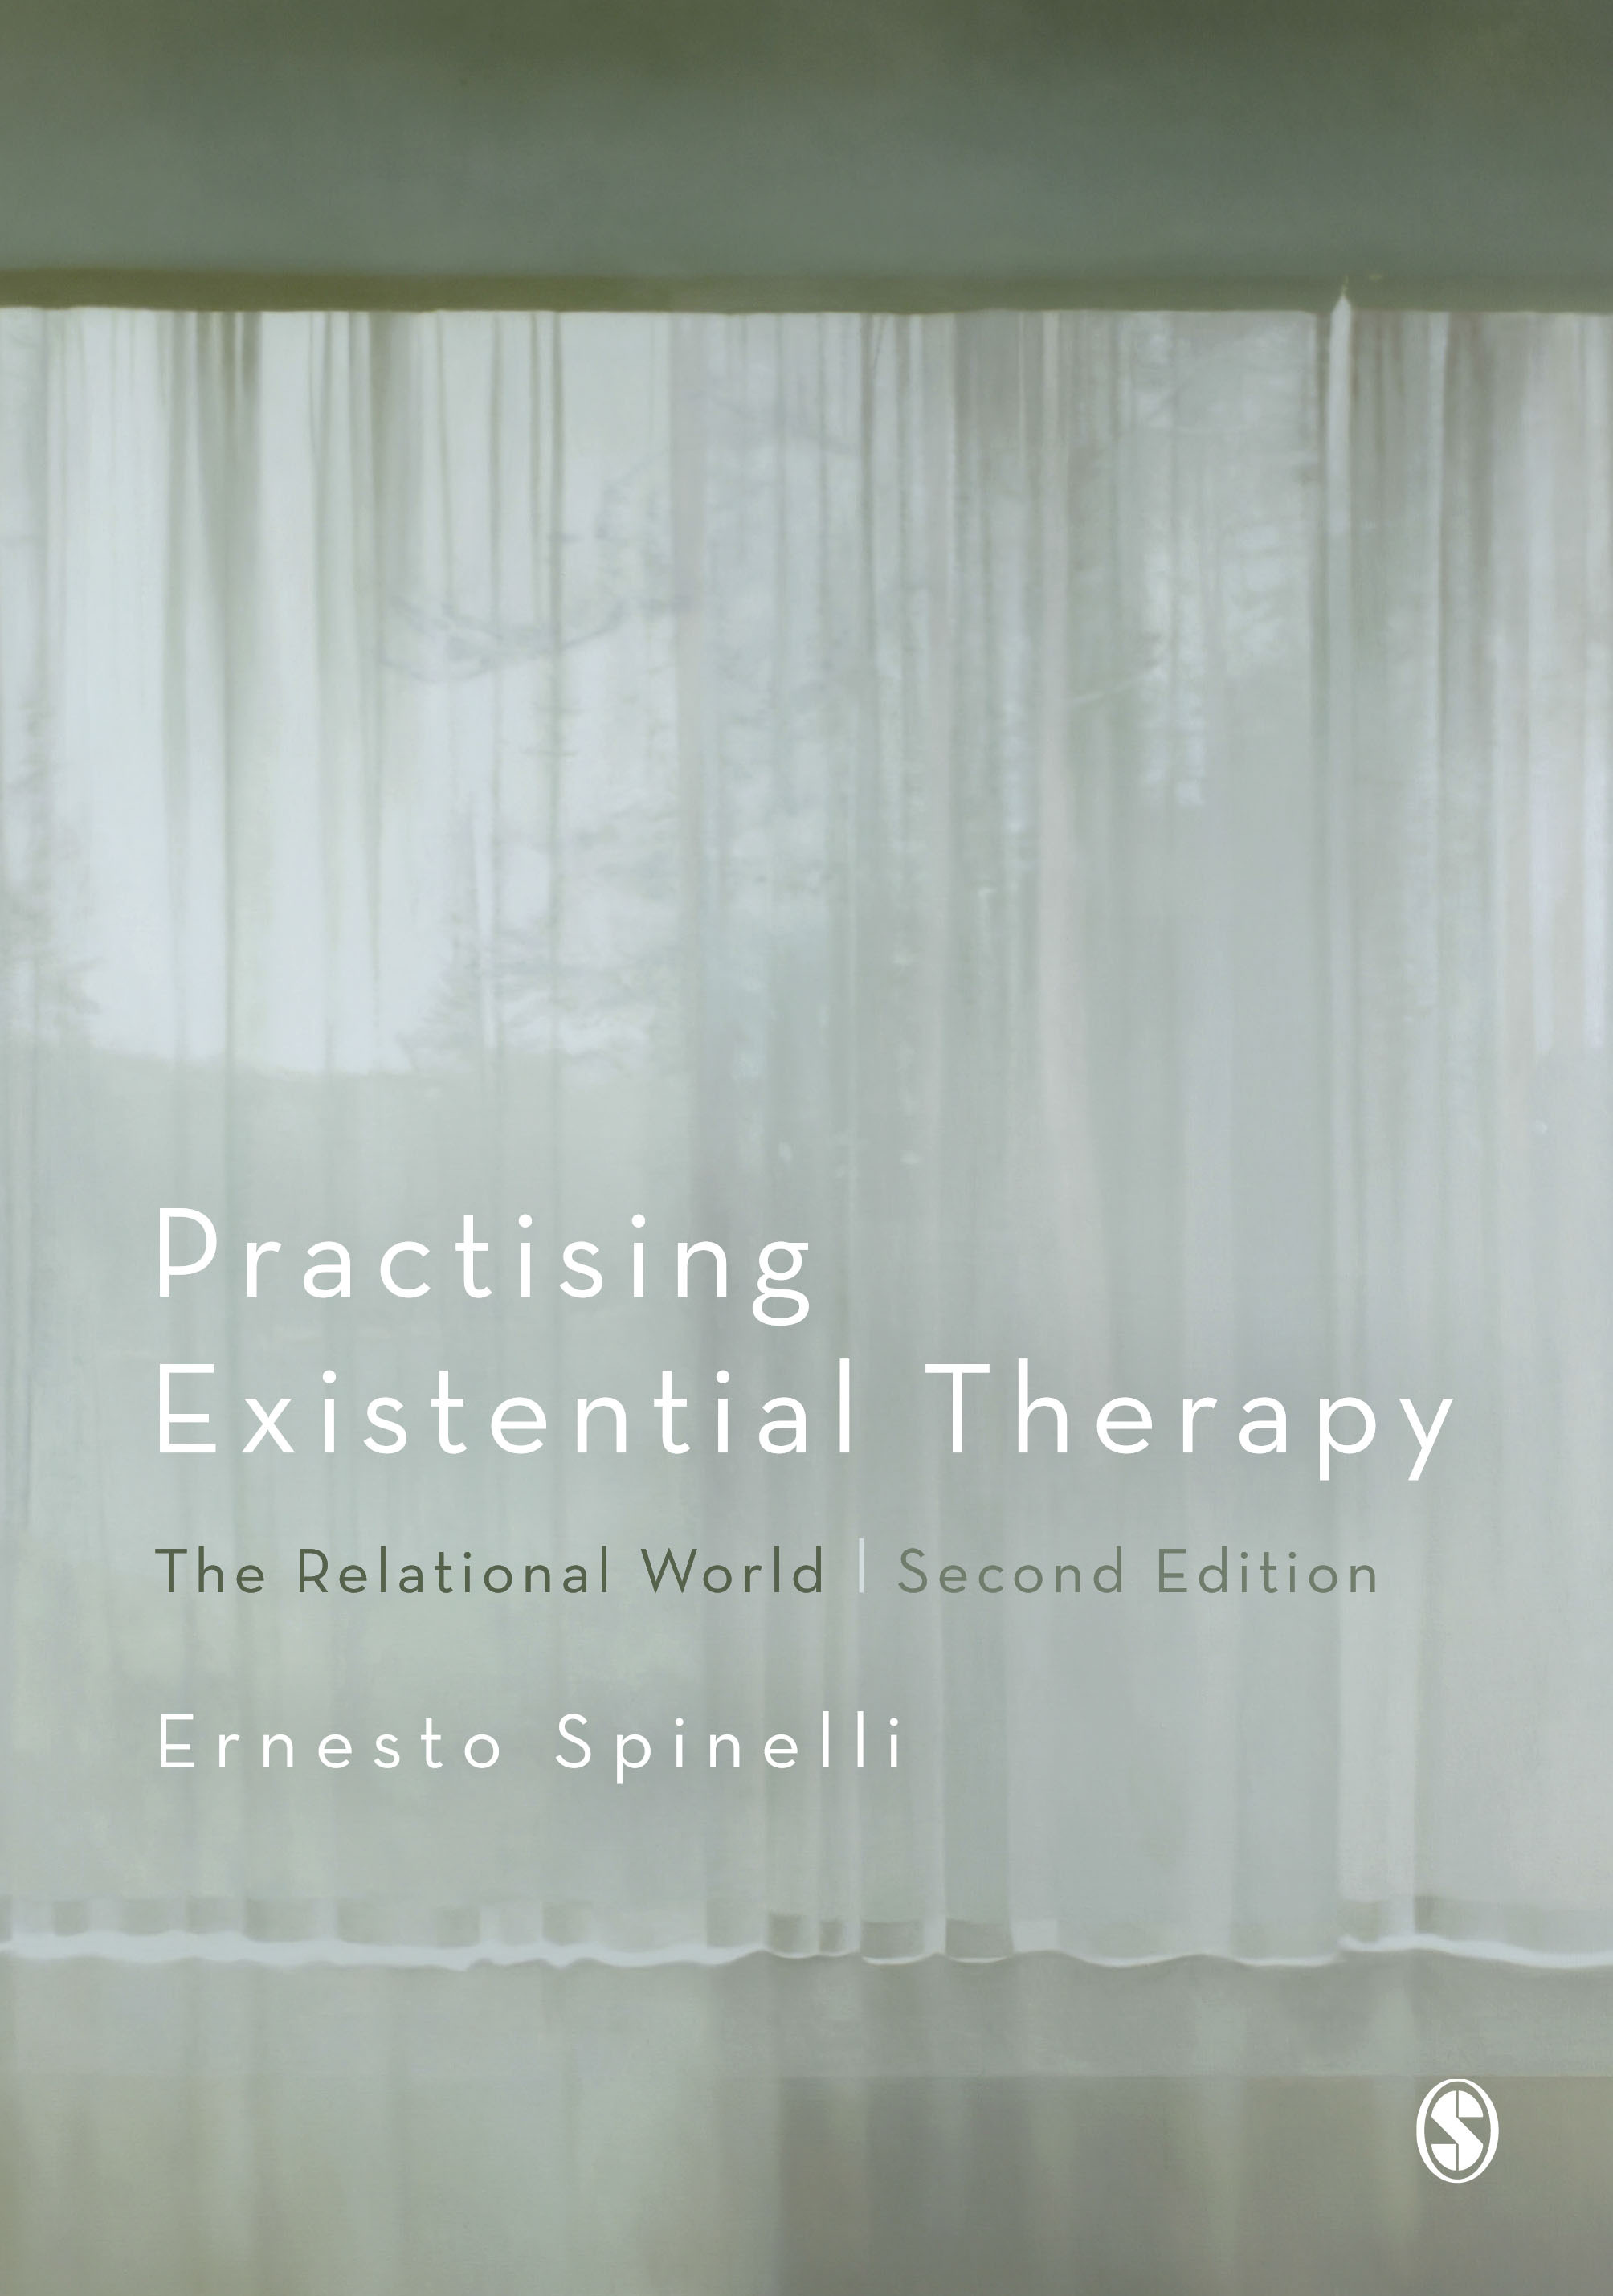 Practising Existential Therapy book cover